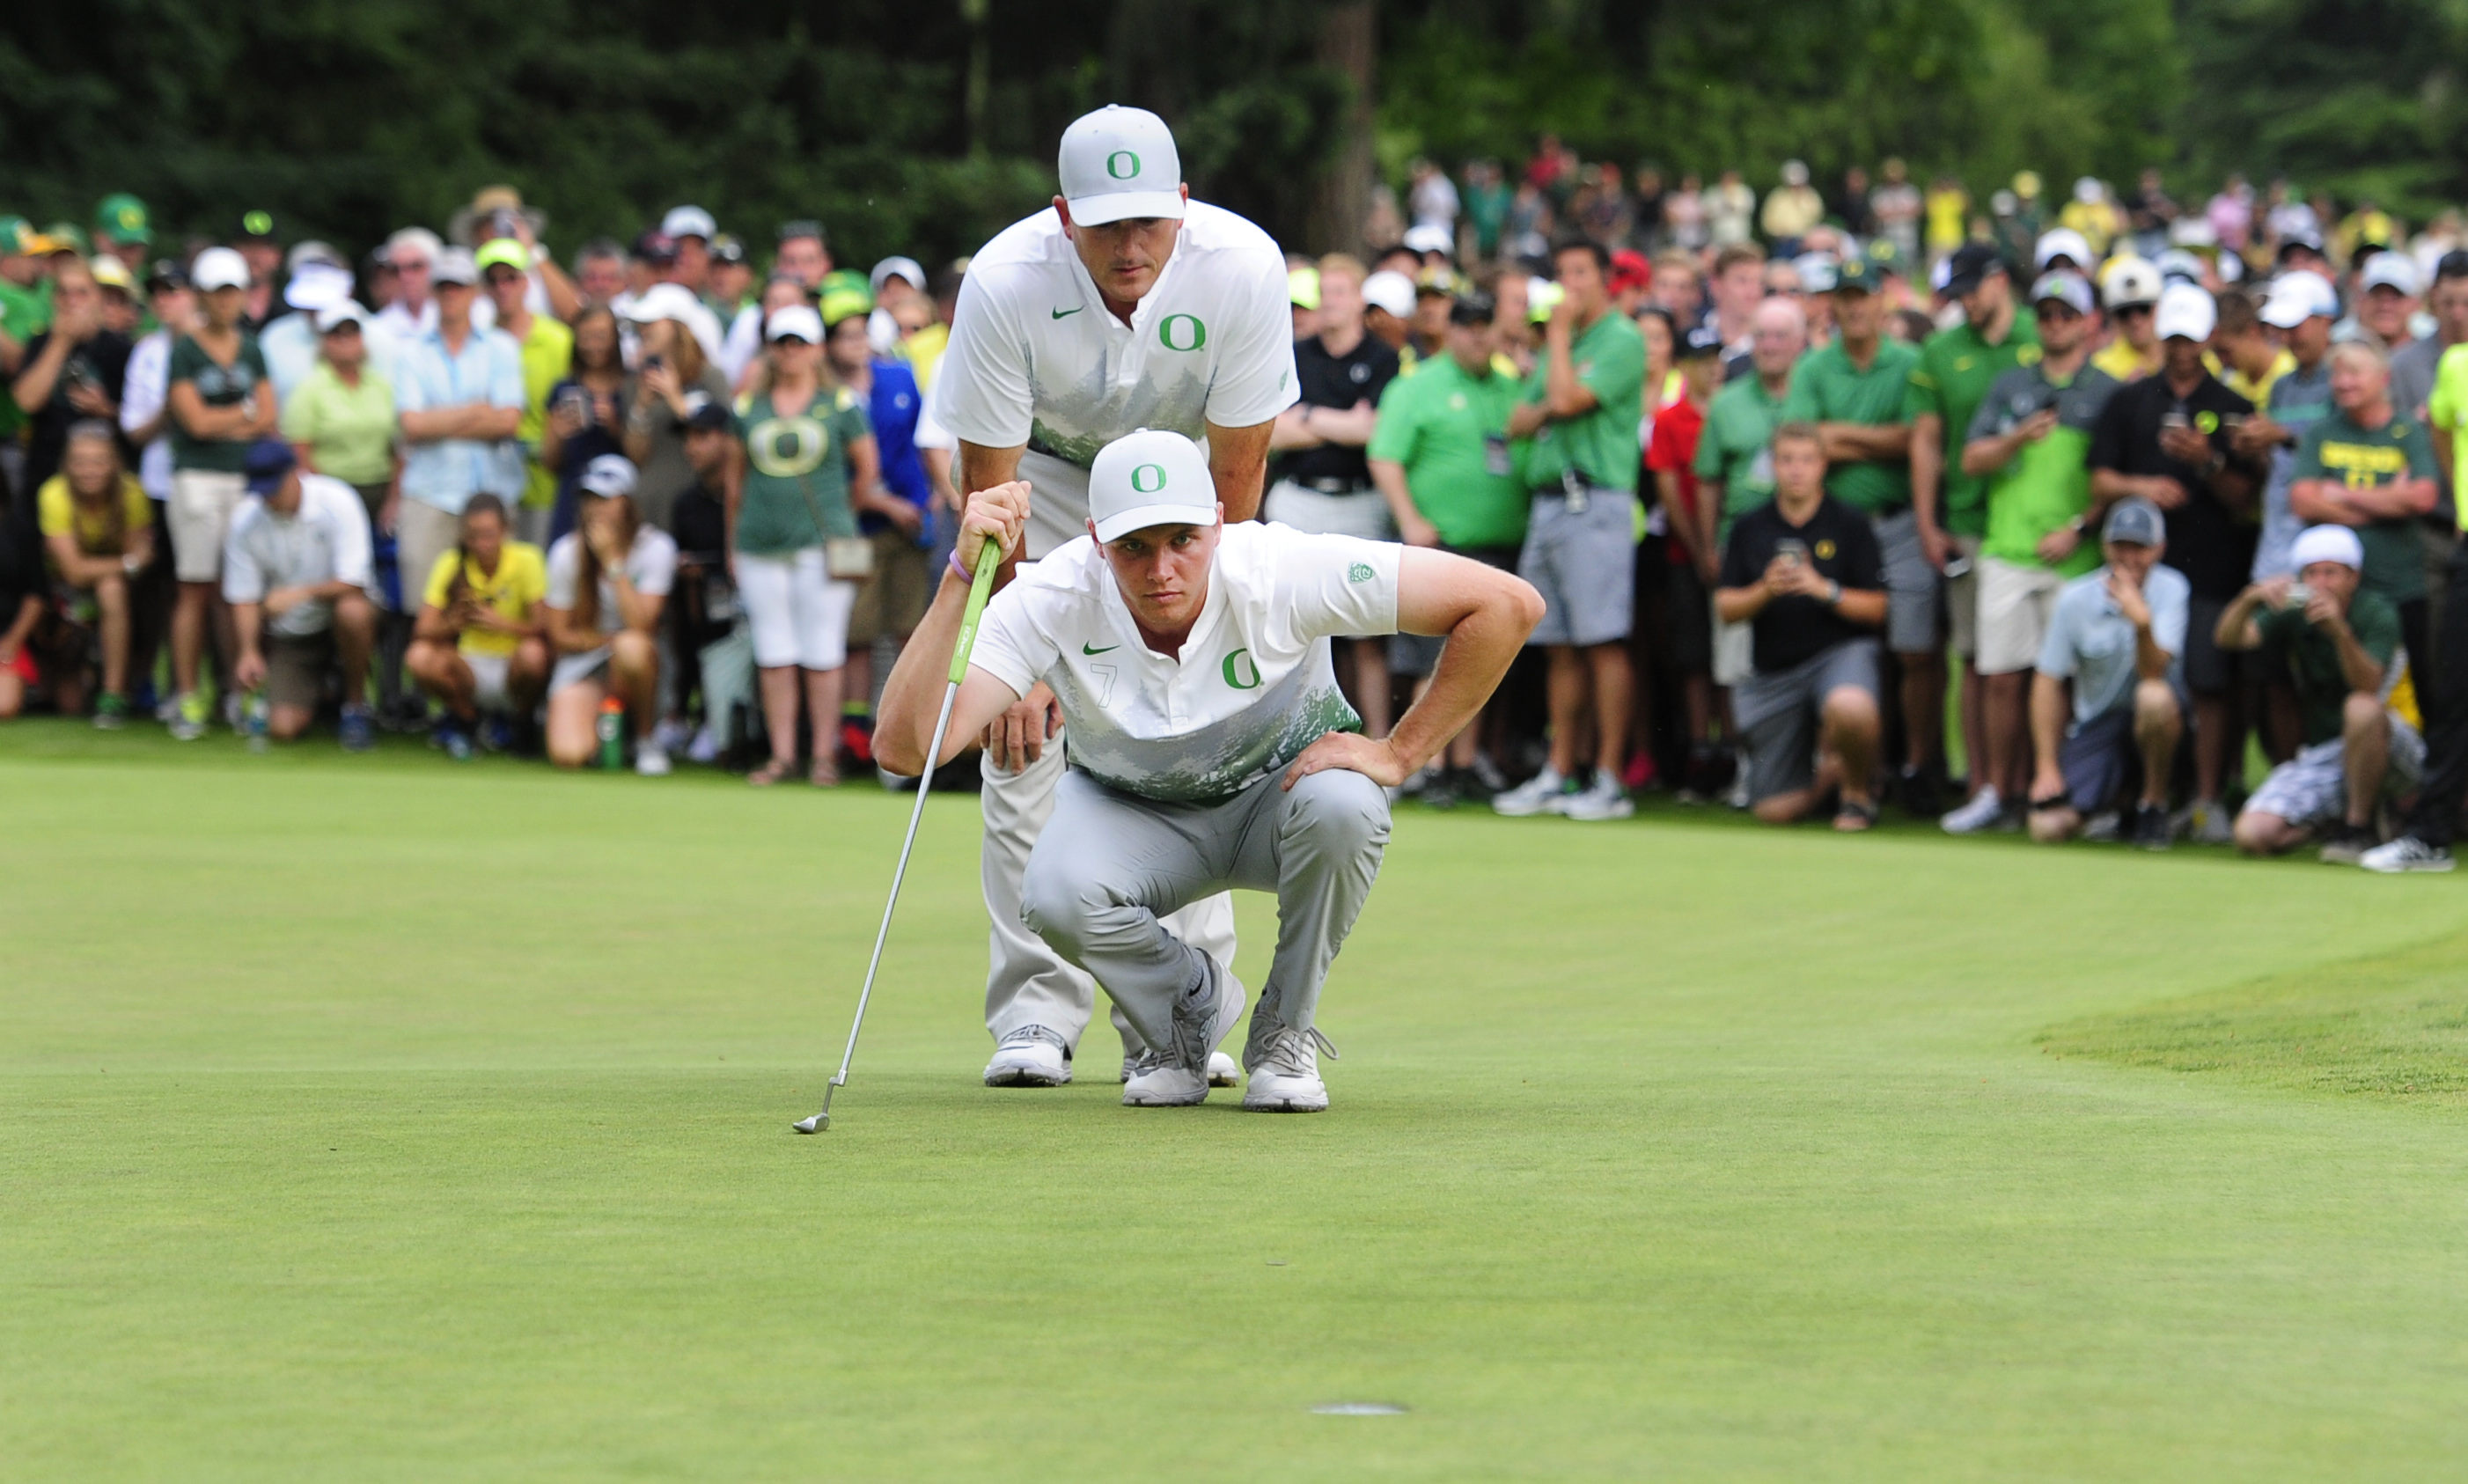 Oregon won the 2016 NCAA Men's golf championship in front of a large hometown crowd